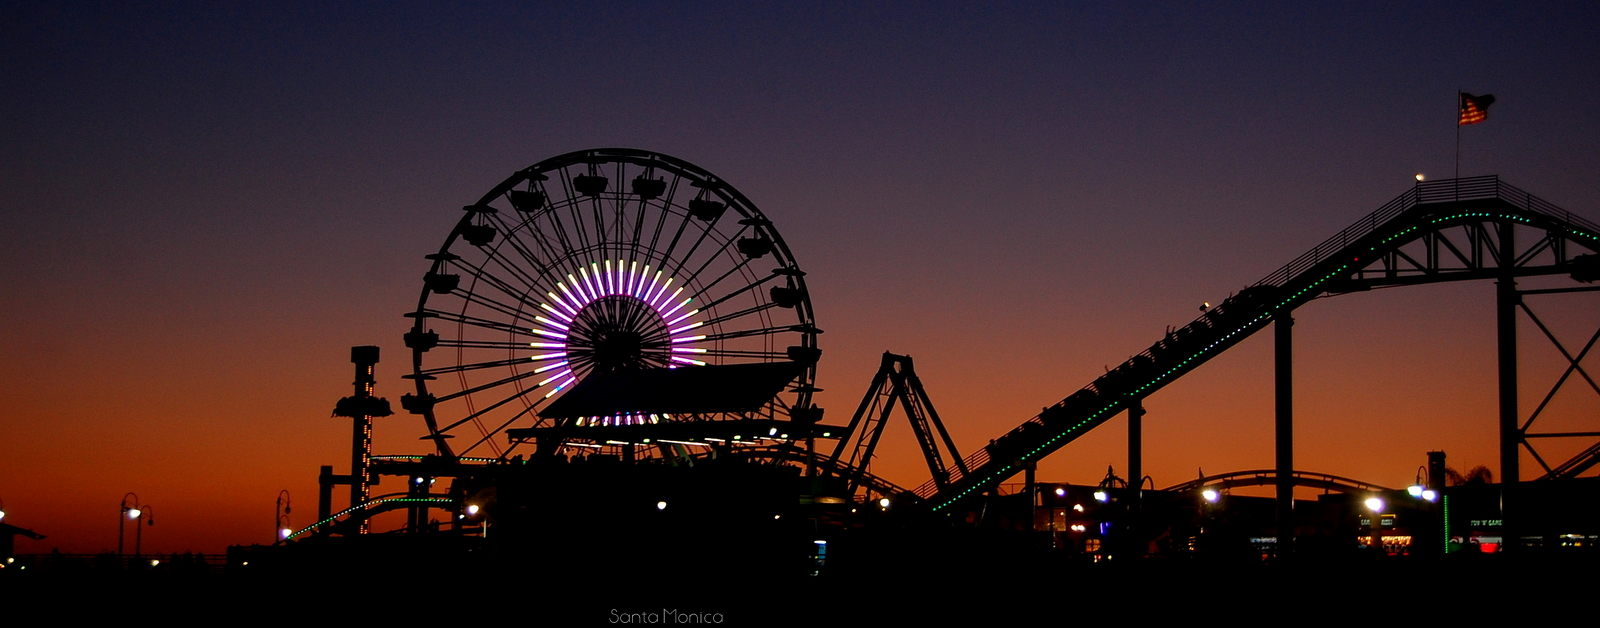 Skyline of the city of Santa Monica, CA (Photo credit: Irina Patrascu Gheorghita)